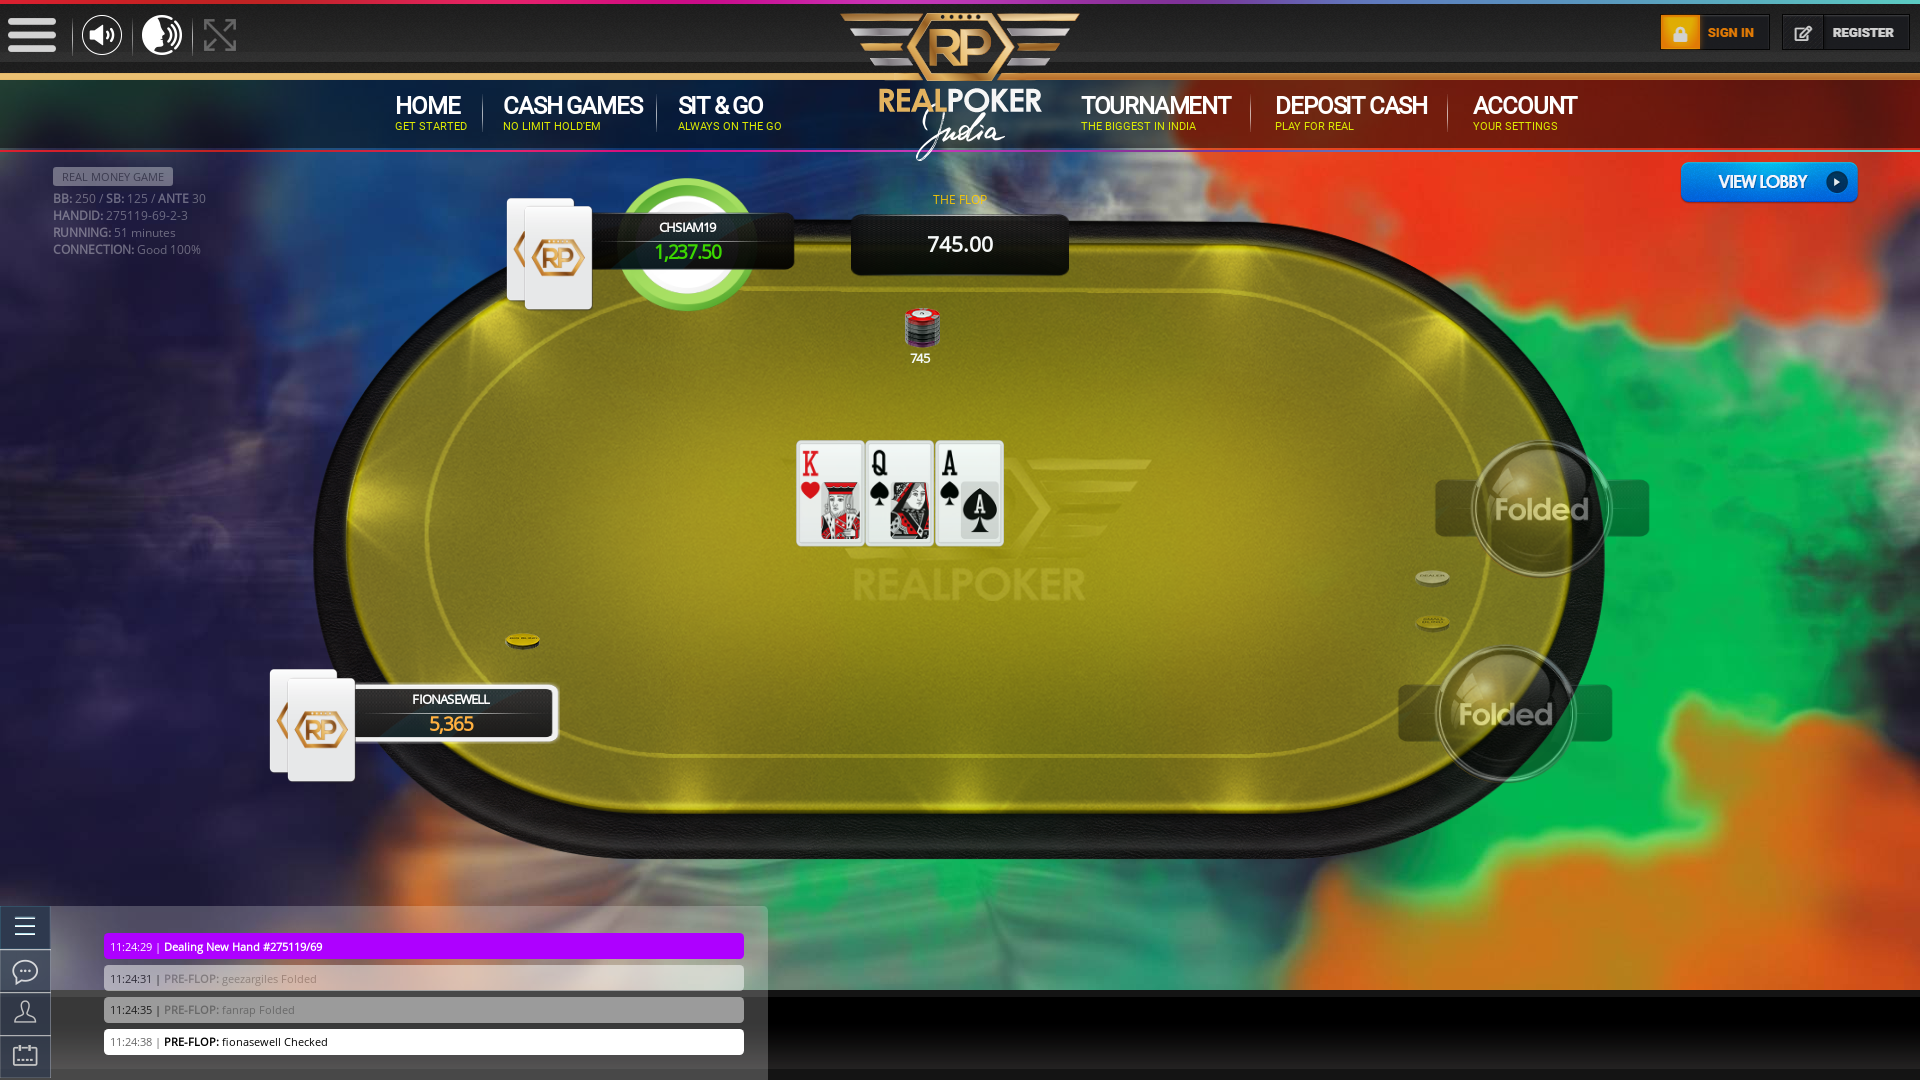 Indian poker on a 10 player table in the 51st minute